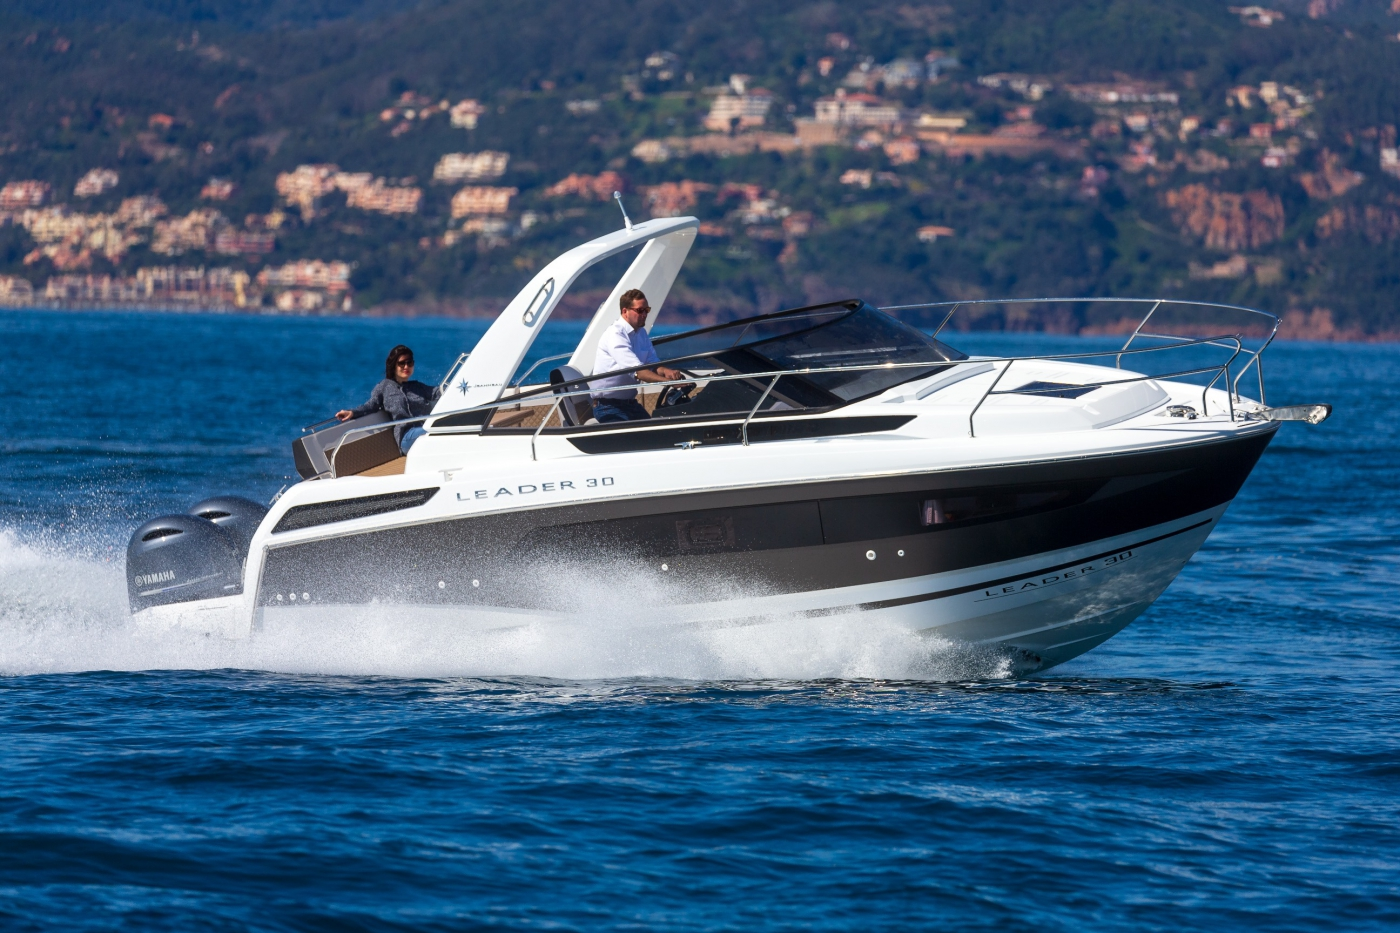 Jeanneau Leader 30 OB Outboard Motor Boats - Sea Ventures